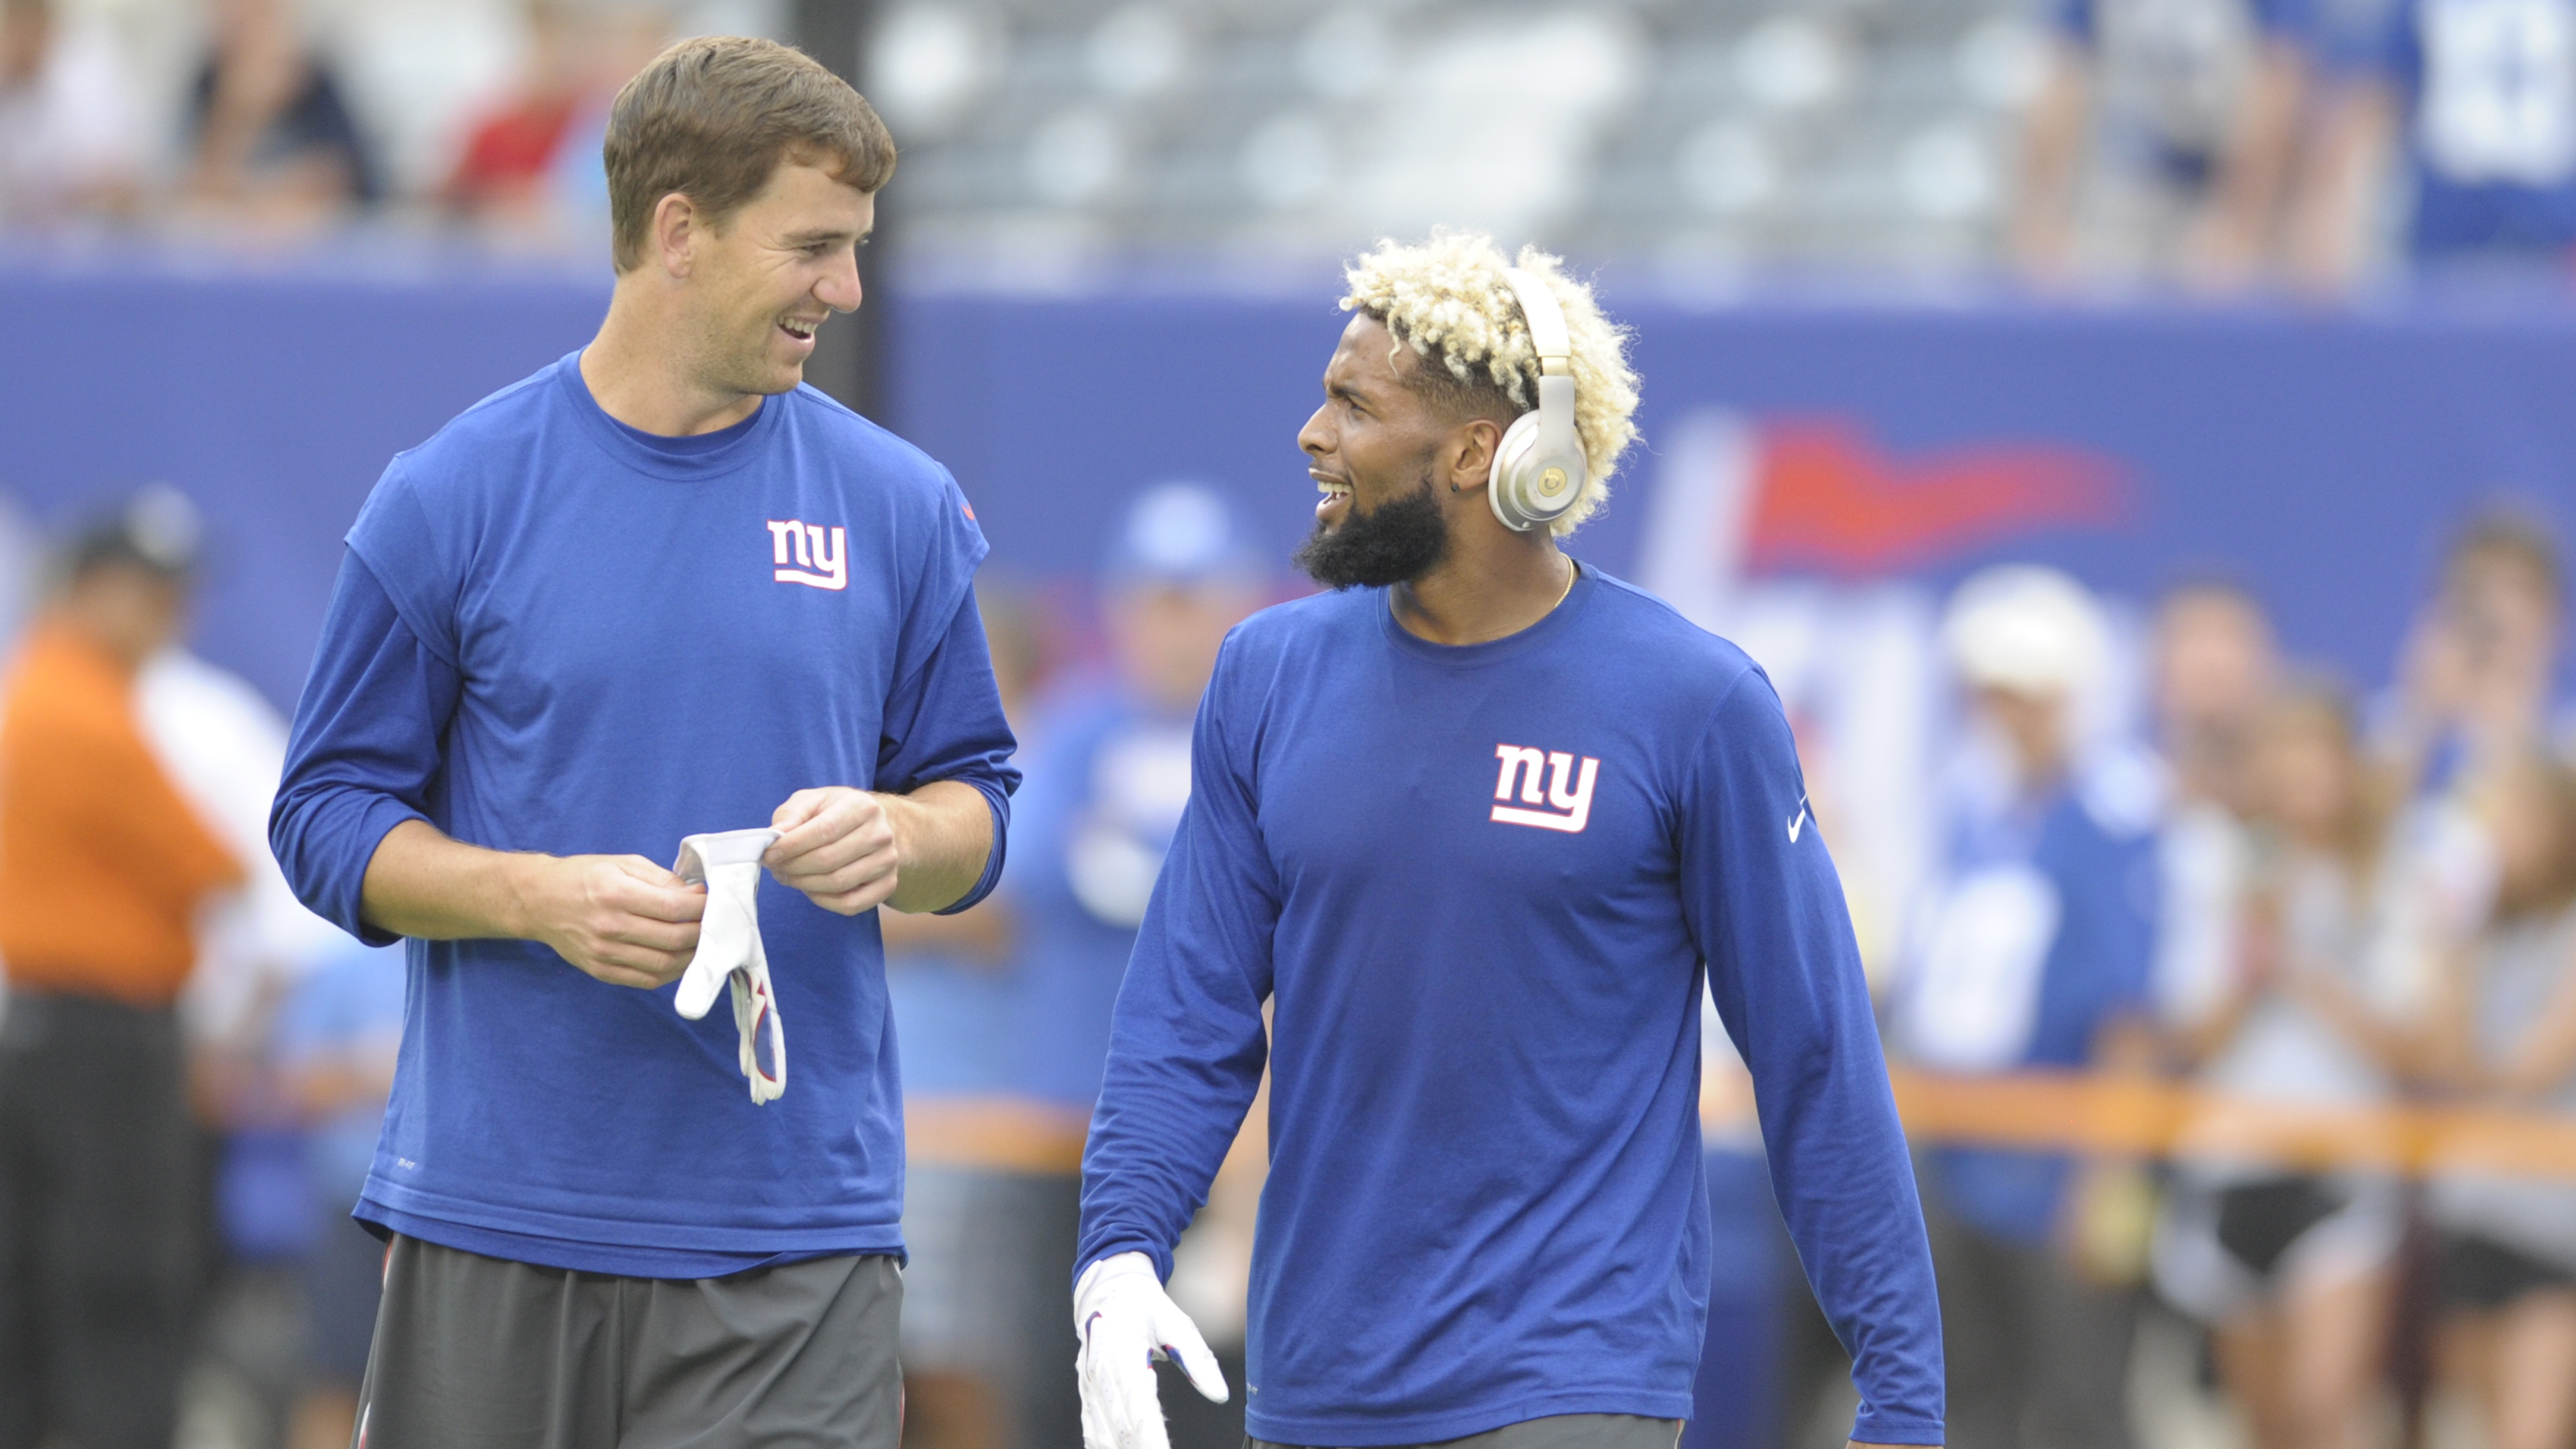 Eli Manning Odell Beckham s antics could be an issue